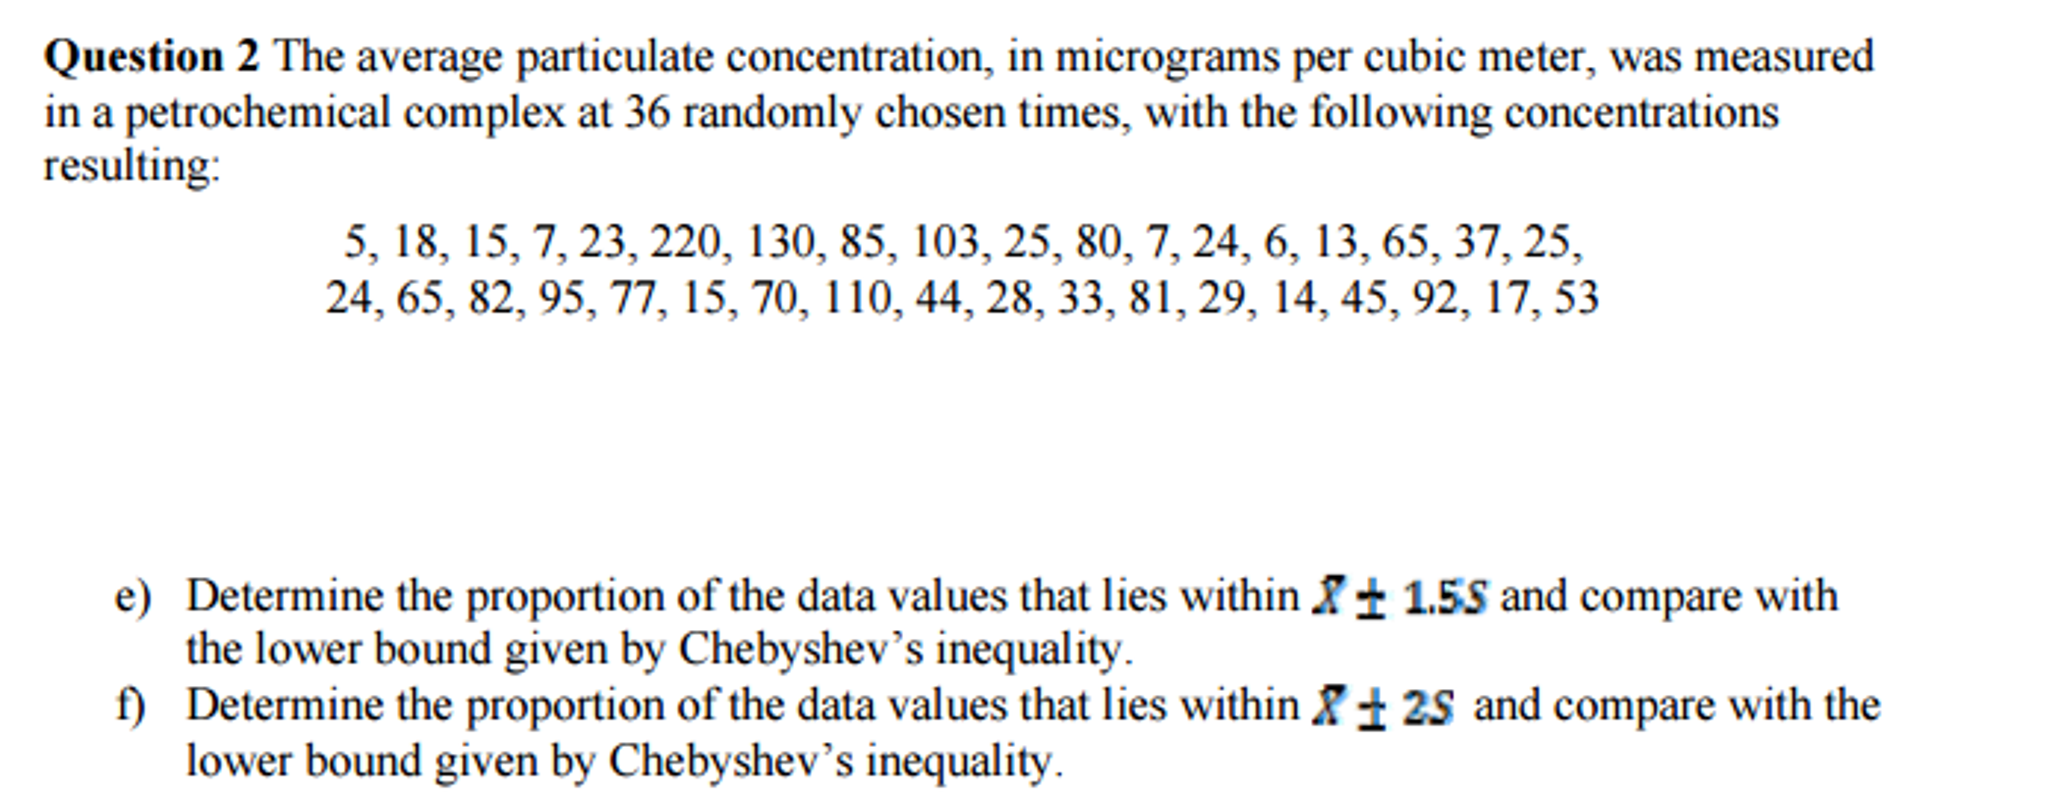 Question The Average Particulate Concentration In Micrograms Per Cubic Meter Was Measured A Petrochem